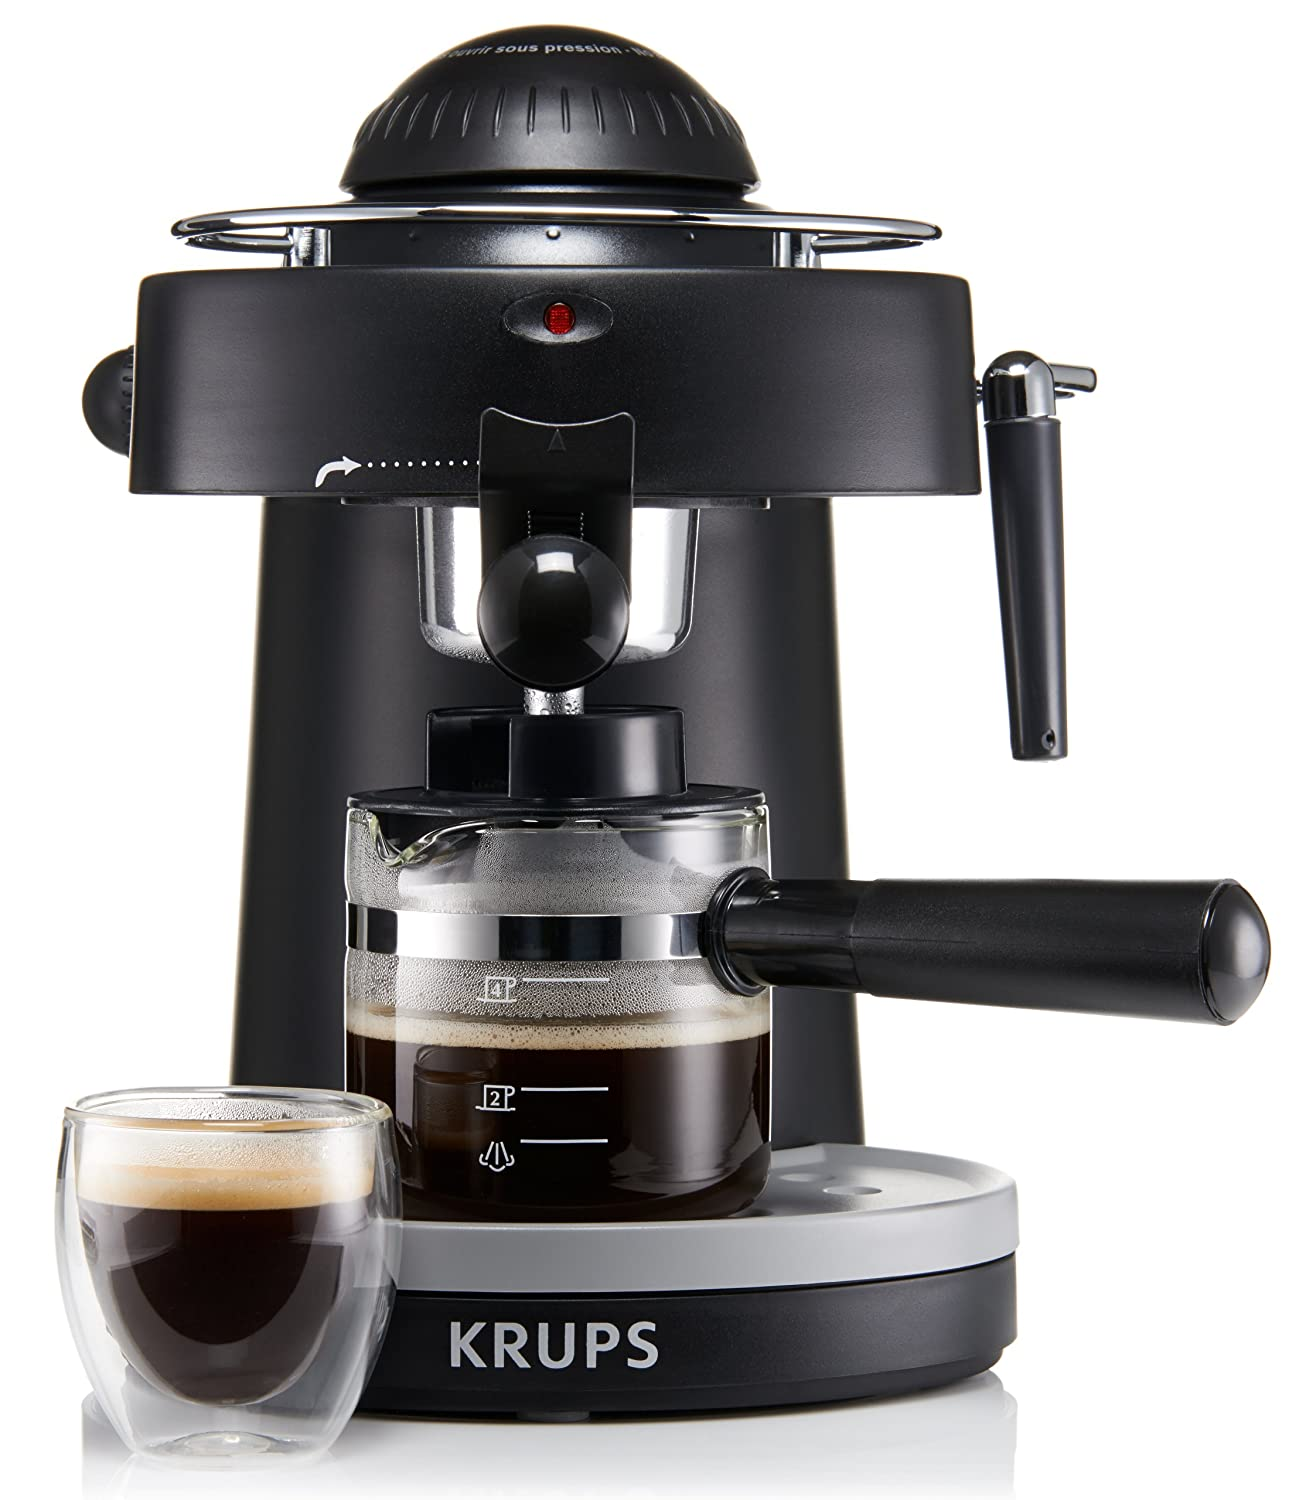 krups xp1000 steam espresso machine with frothing nozzle for cappuccino black ebay. Black Bedroom Furniture Sets. Home Design Ideas